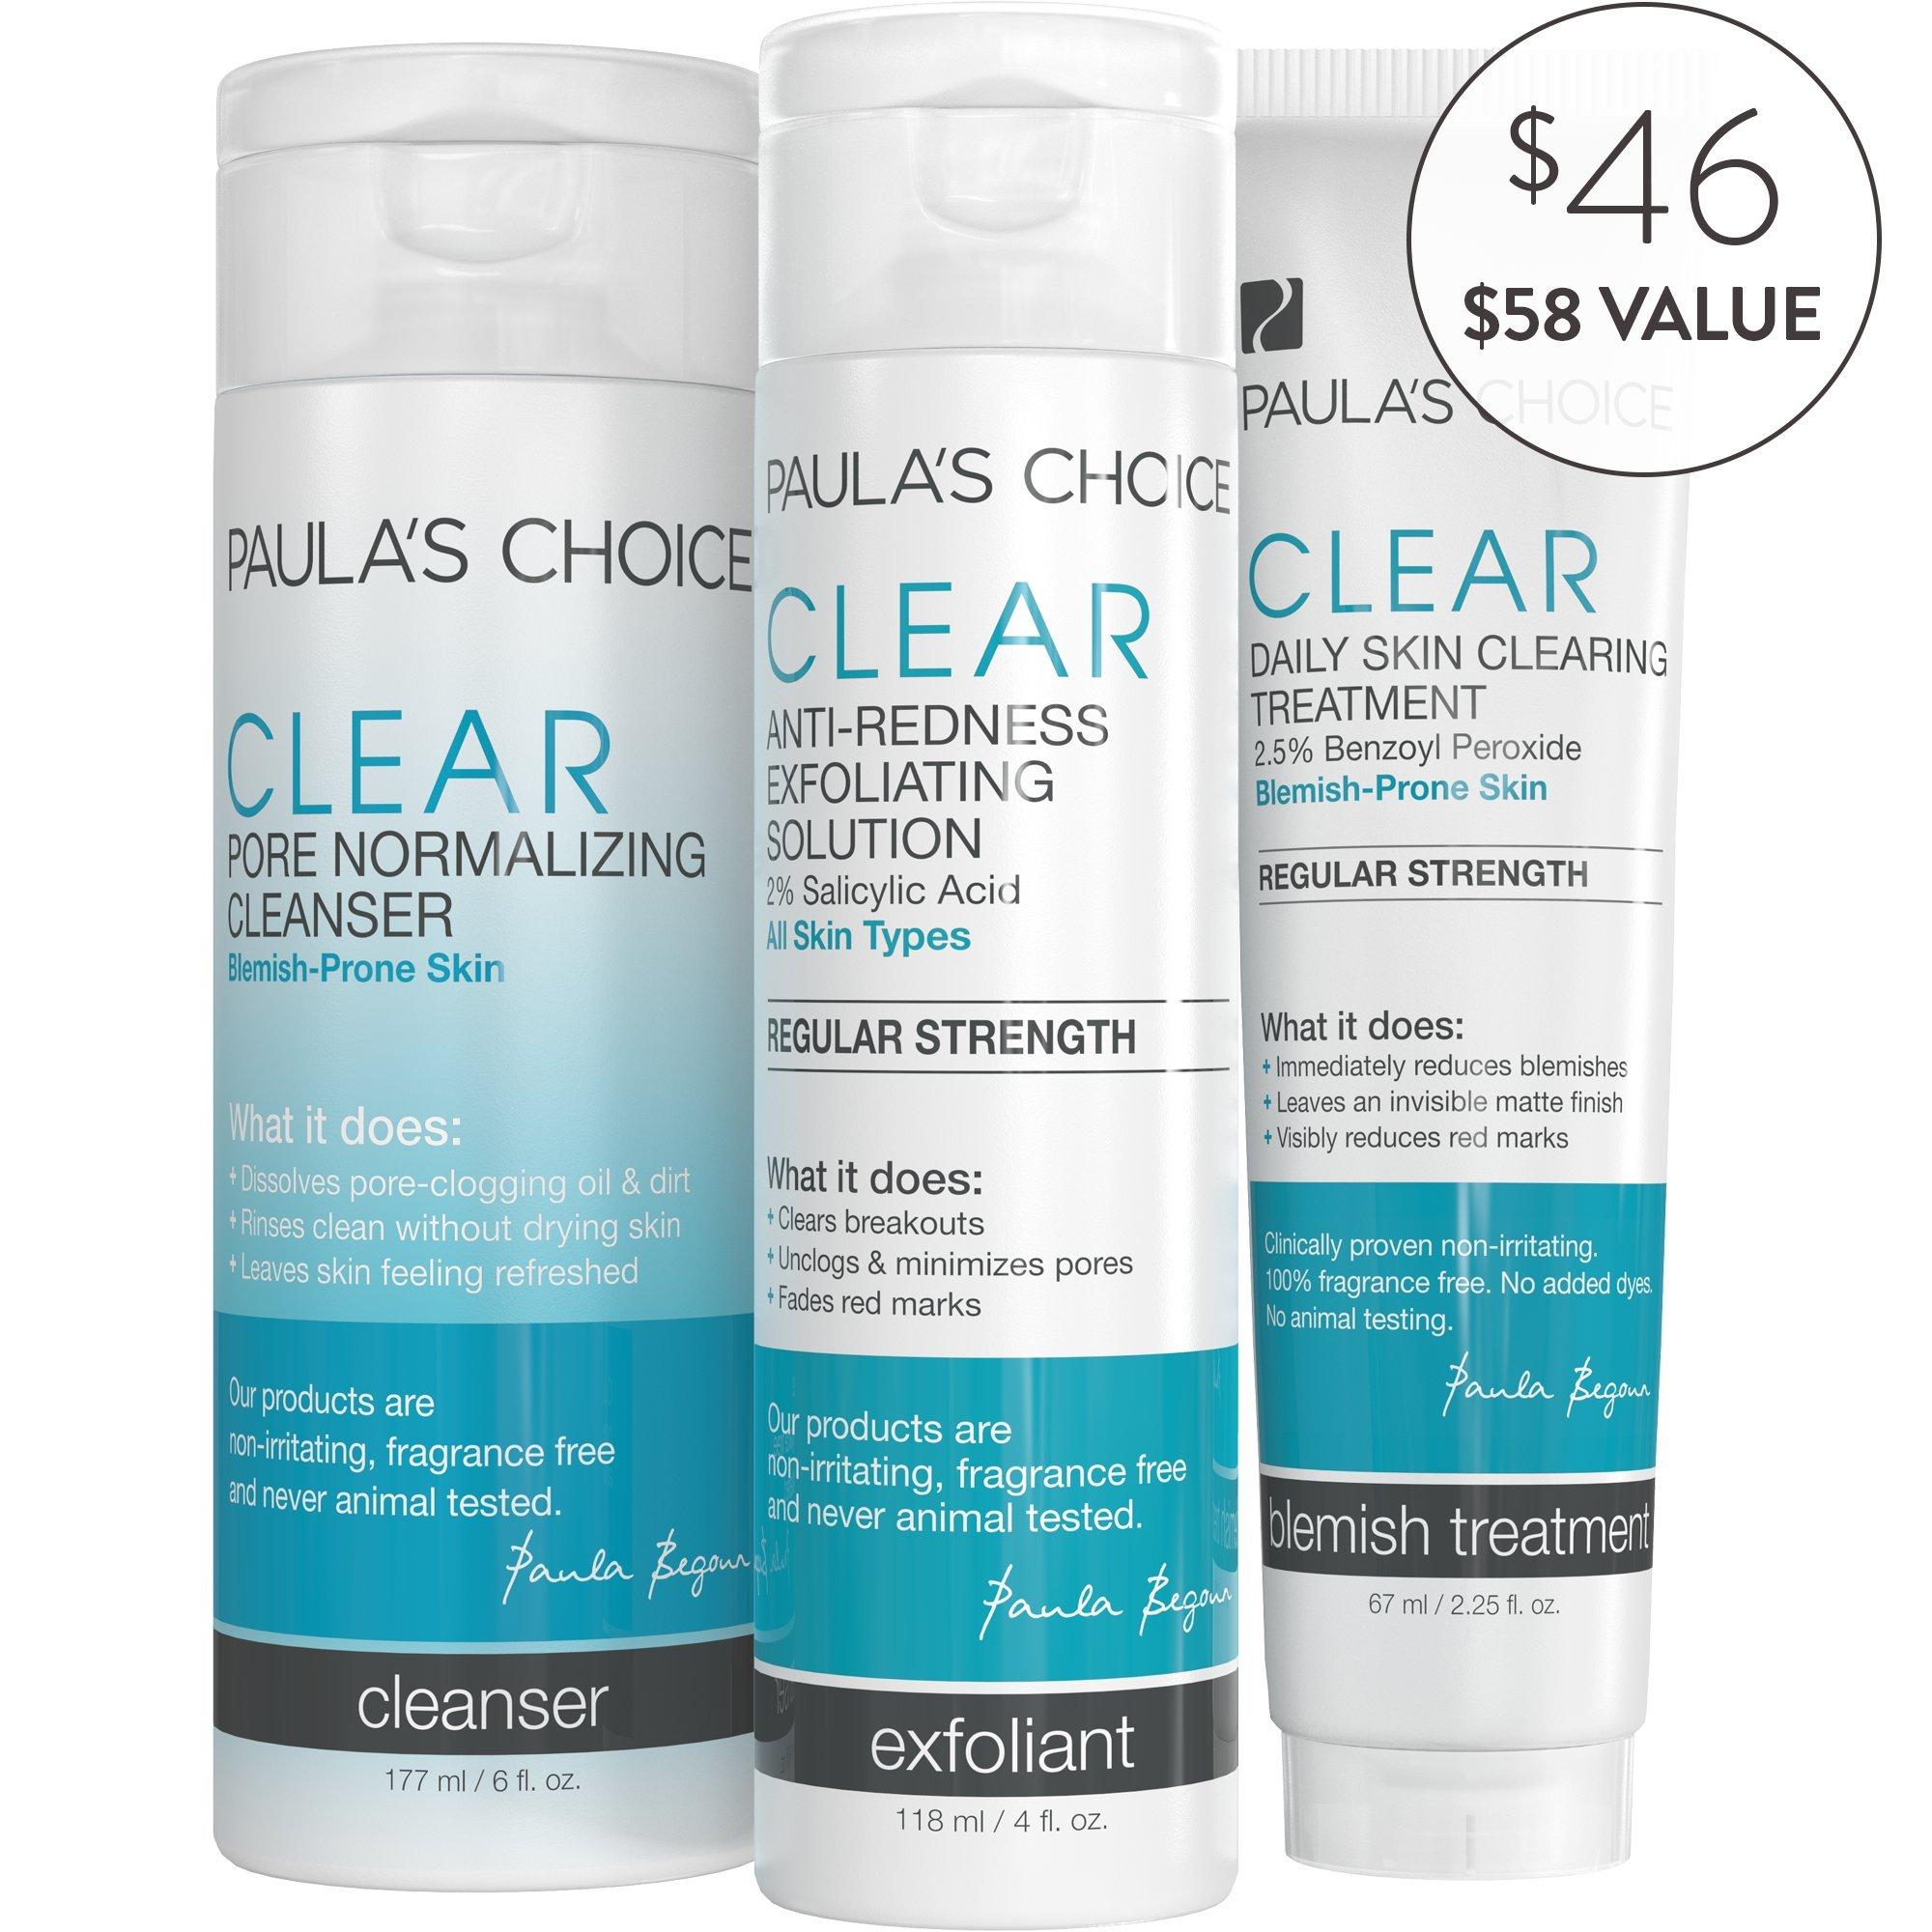 Paula's Choice-CLEAR Regular Strength Acne Kit-2% Salicylic Acid & 2.5% Benzoyl Peroxide for Moderate Facial Acne-For Blemish Prone Skin